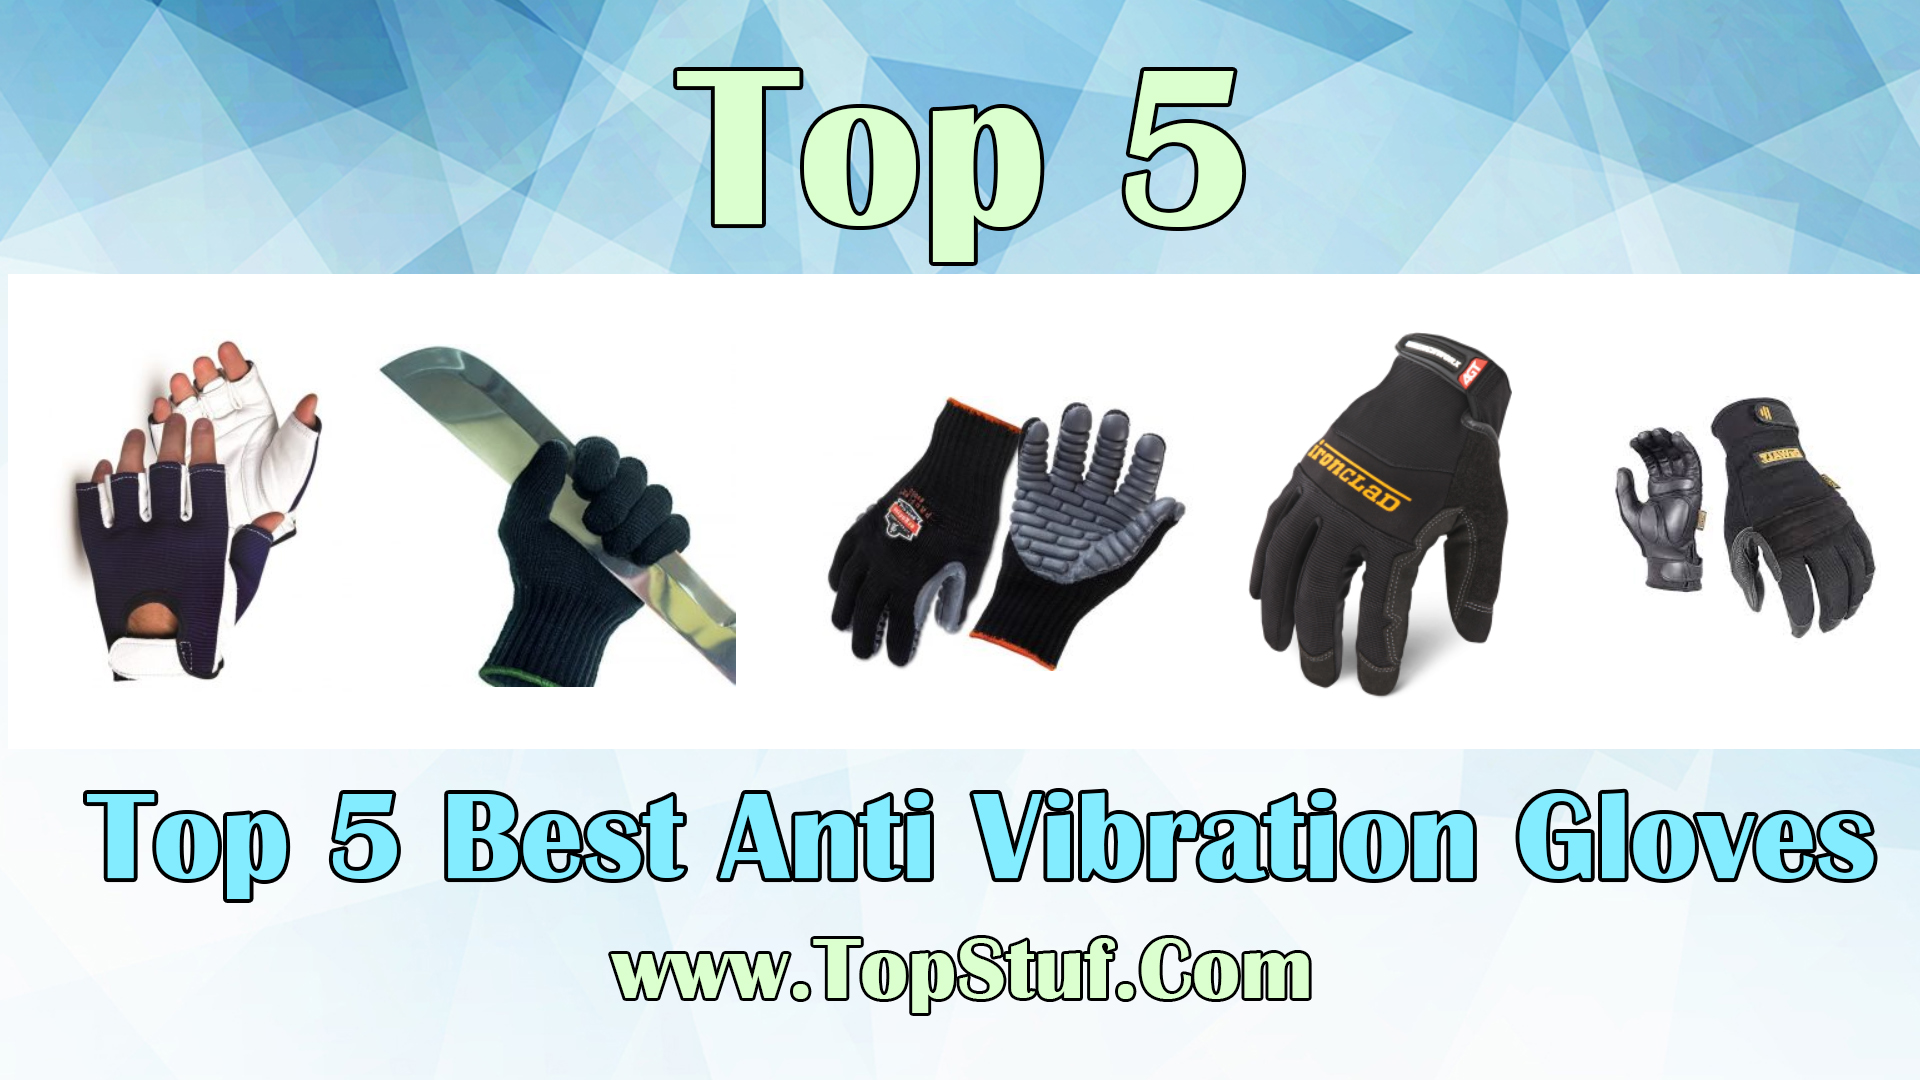 Top 5 Best Anti Vibration Gloves